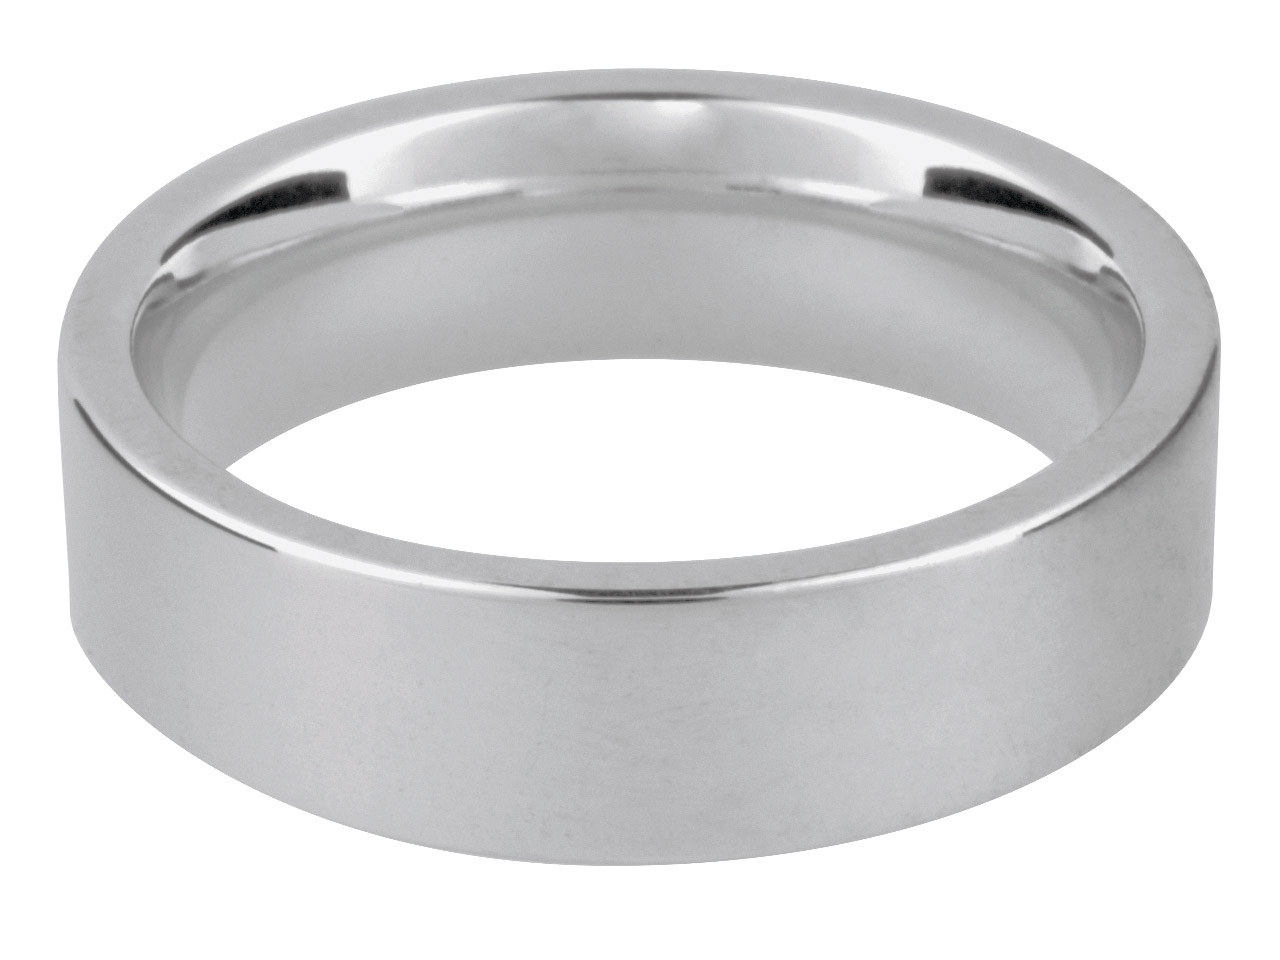 18ct White Easy Fit Wedding Ring   4.0mm J 6.2gms Medium Weight       Hallmarked Wall Thickness 1.85mm